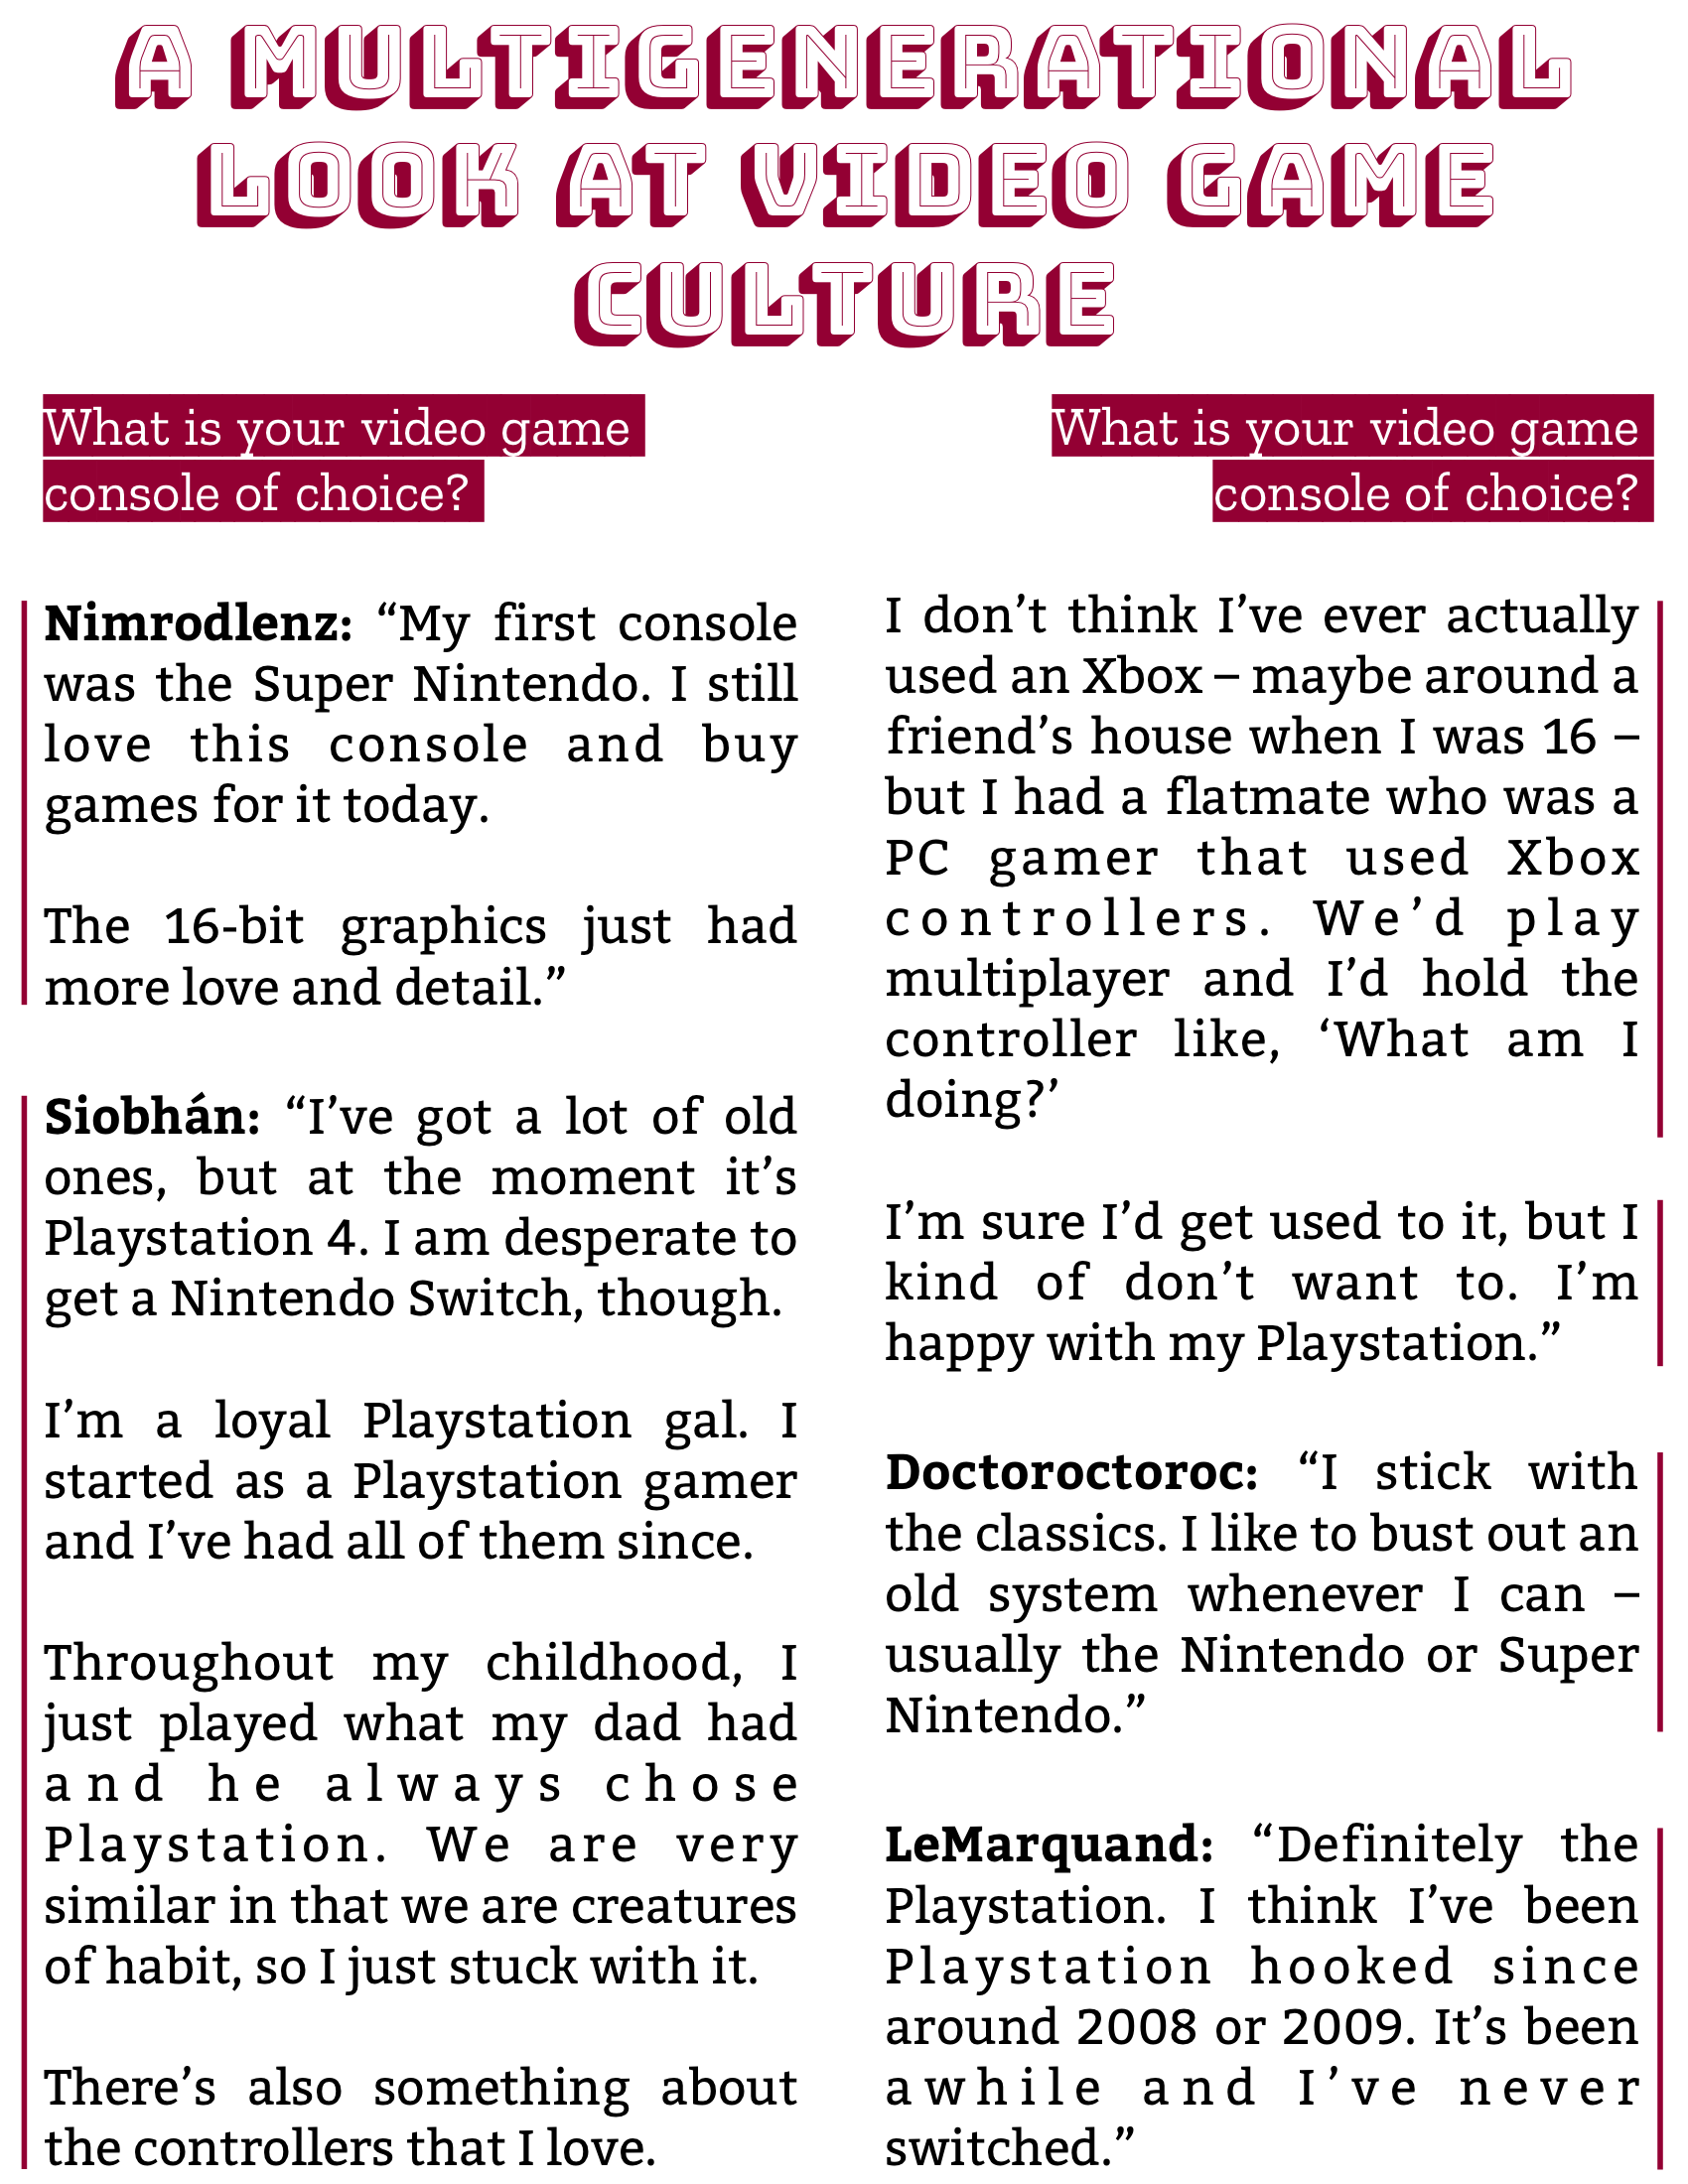 The Burgundy Zine #5: Culture Pg. 86